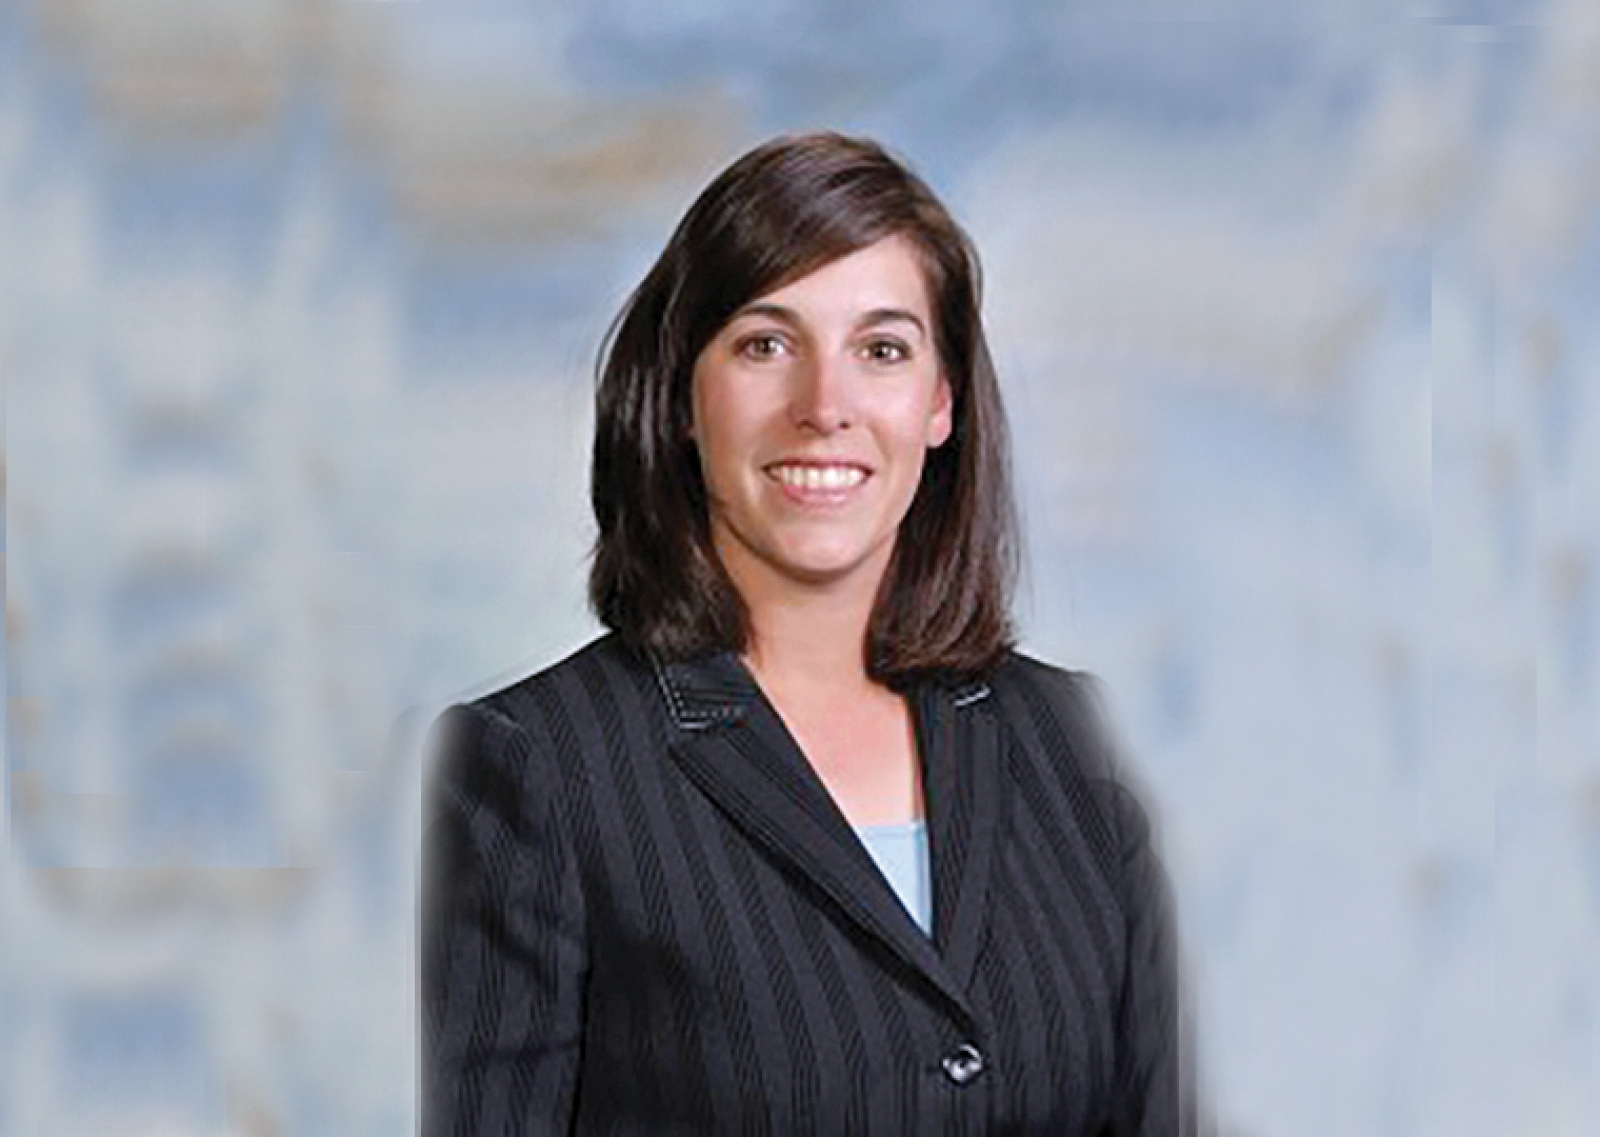 Mustangs alumna appointed to 12th Judicial District Judgeship